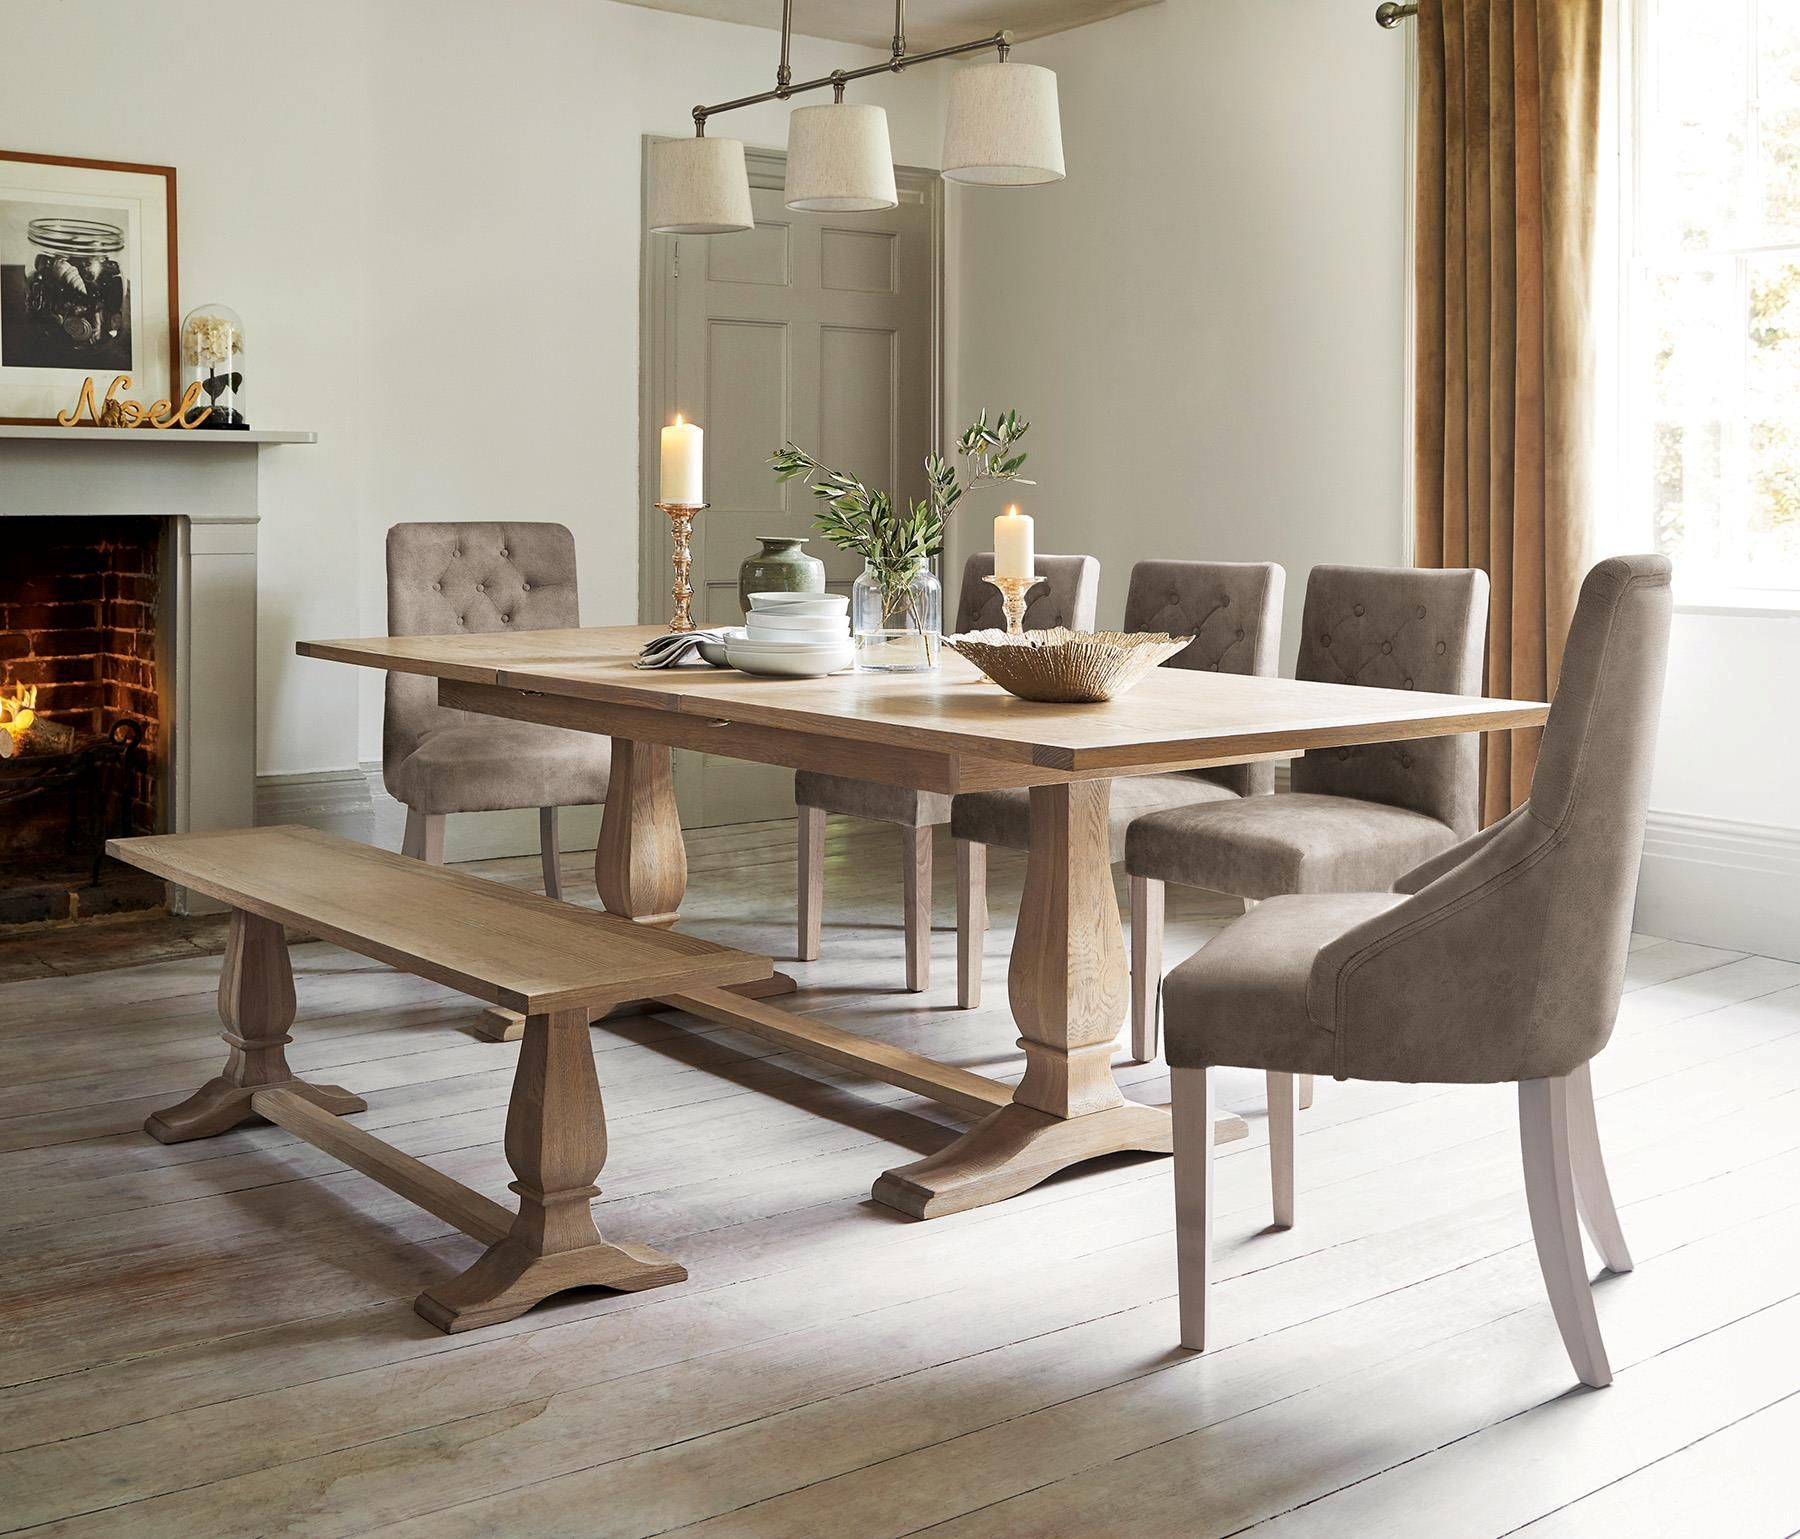 Pin on Lindens - Dining Room Ideas